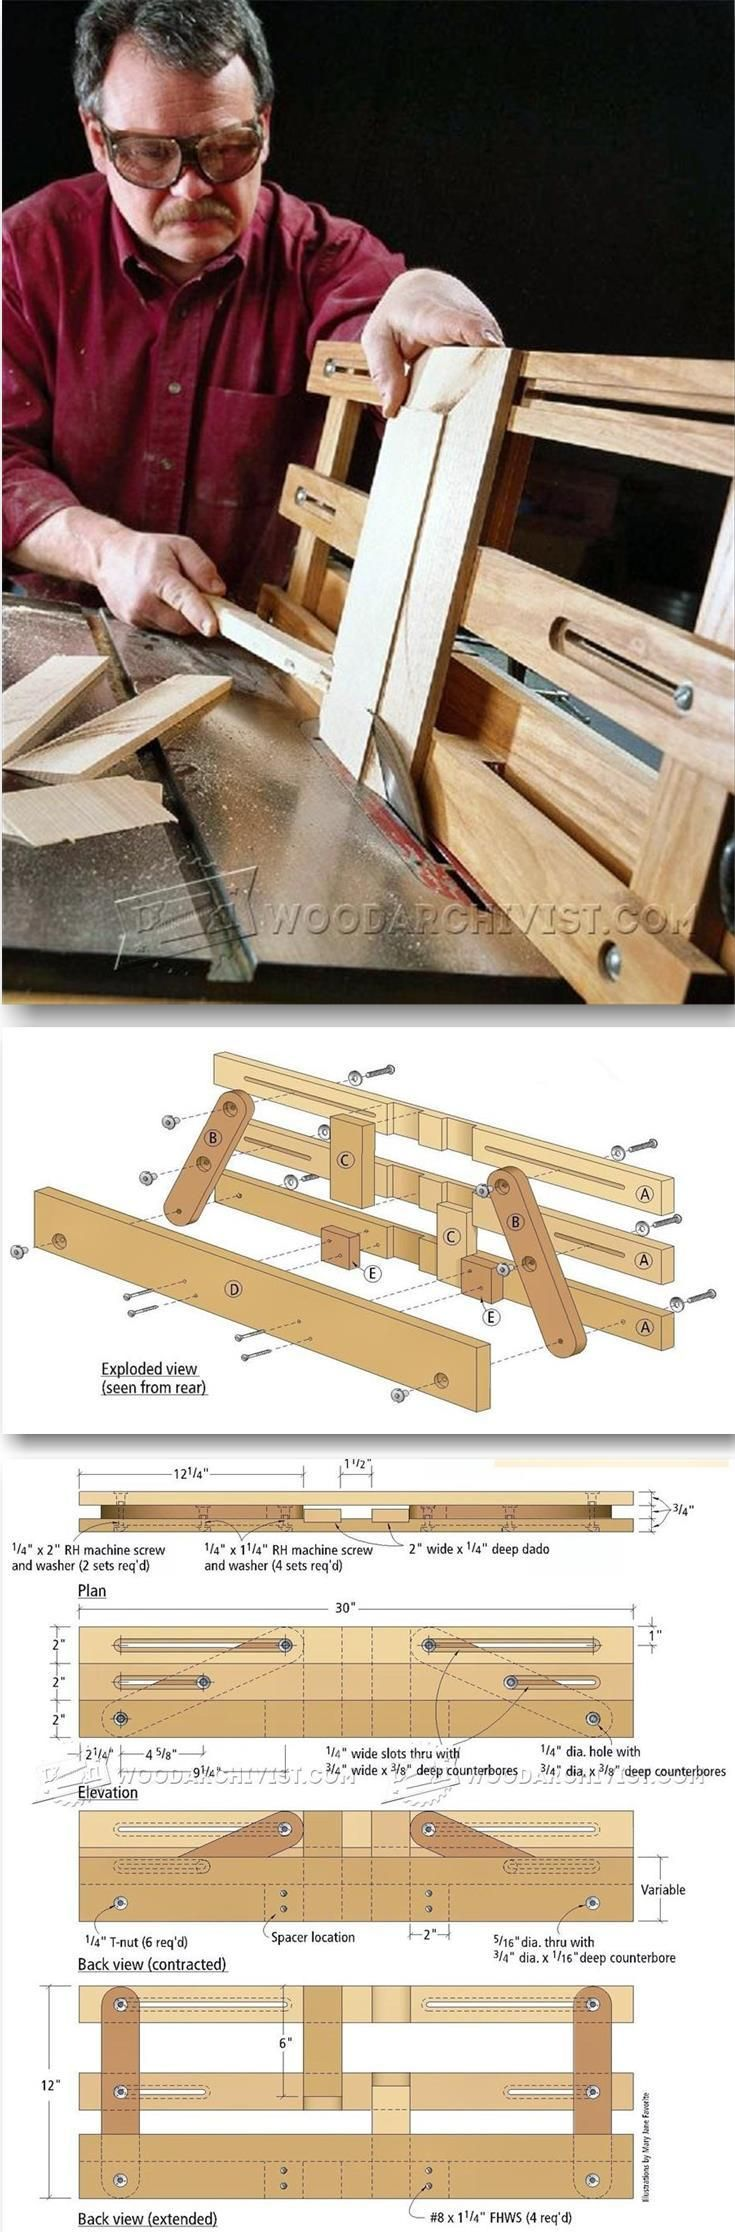 Raised Panel Table Saw Jig - Cabinet Door Construction Techniques - Woodwork, Woodworking, Woodworking Plans, Woodworking Projects